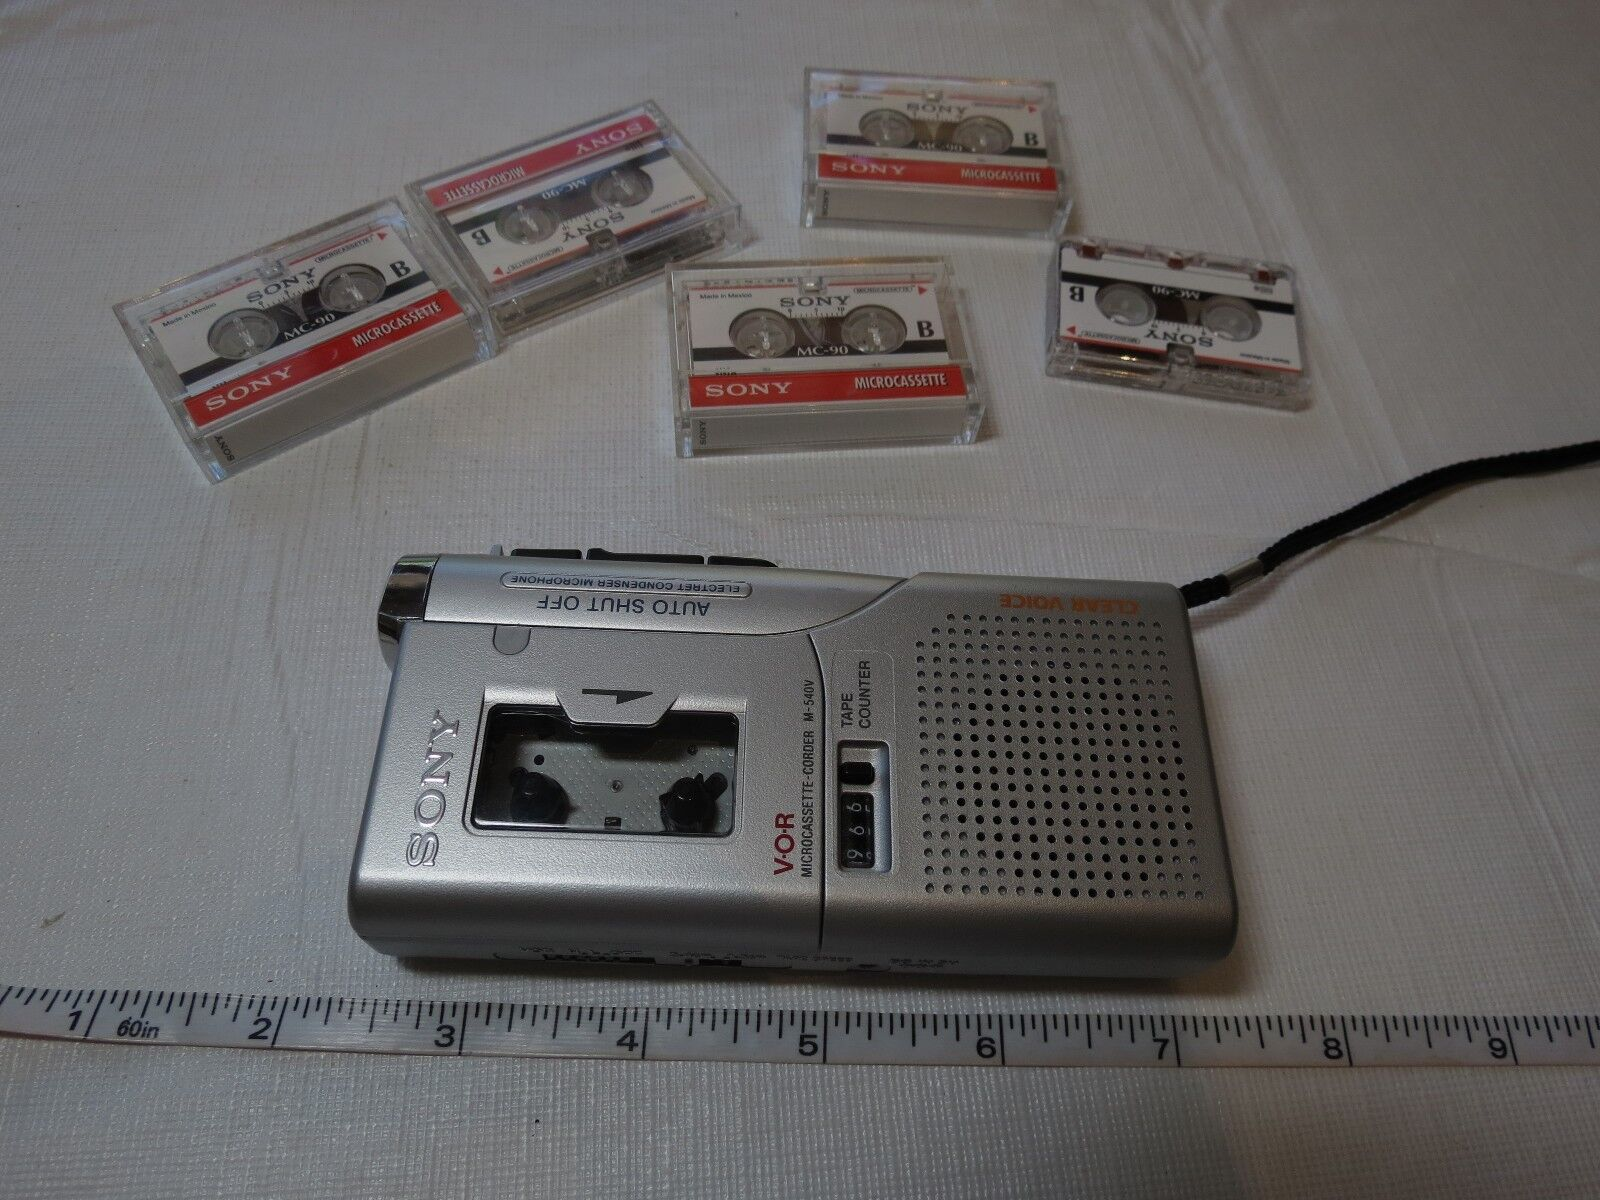 Sony V-O-R video voice recorder microcassette corder M-540V handheld tapes AS IS